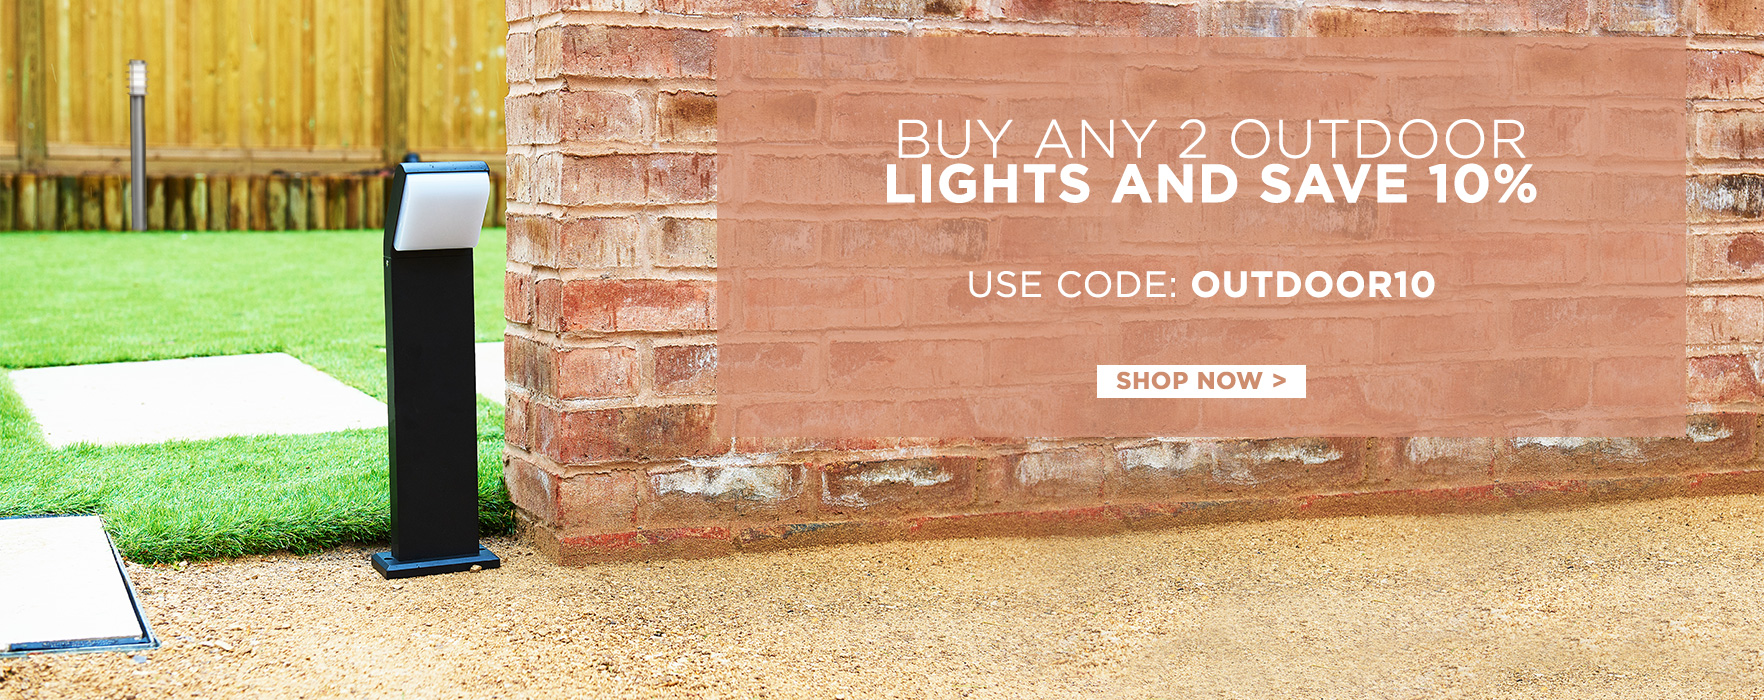 Buy Any 2 And Save 10% On Outdoor Lighting